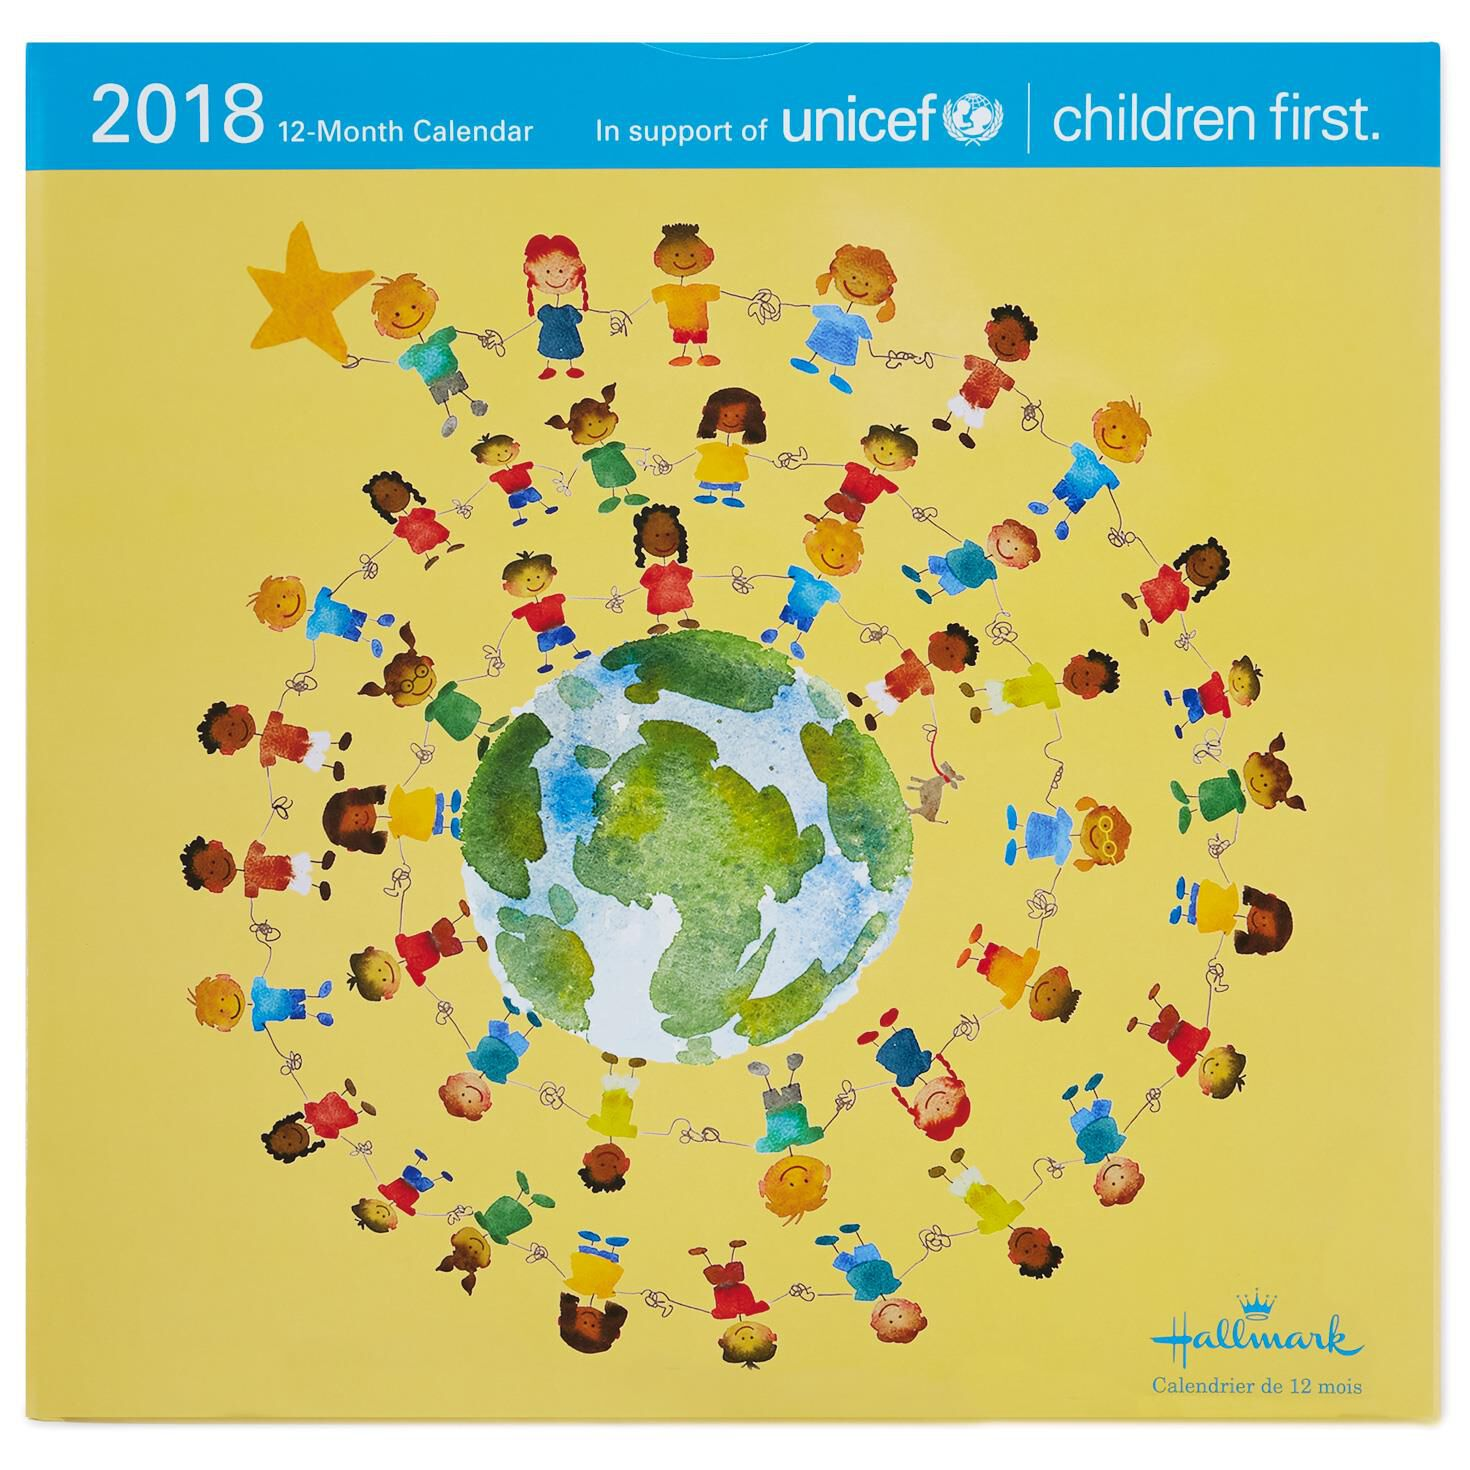 UNICEF 2018 Wall Calendar, 12-Month - Calendars - Hallmark